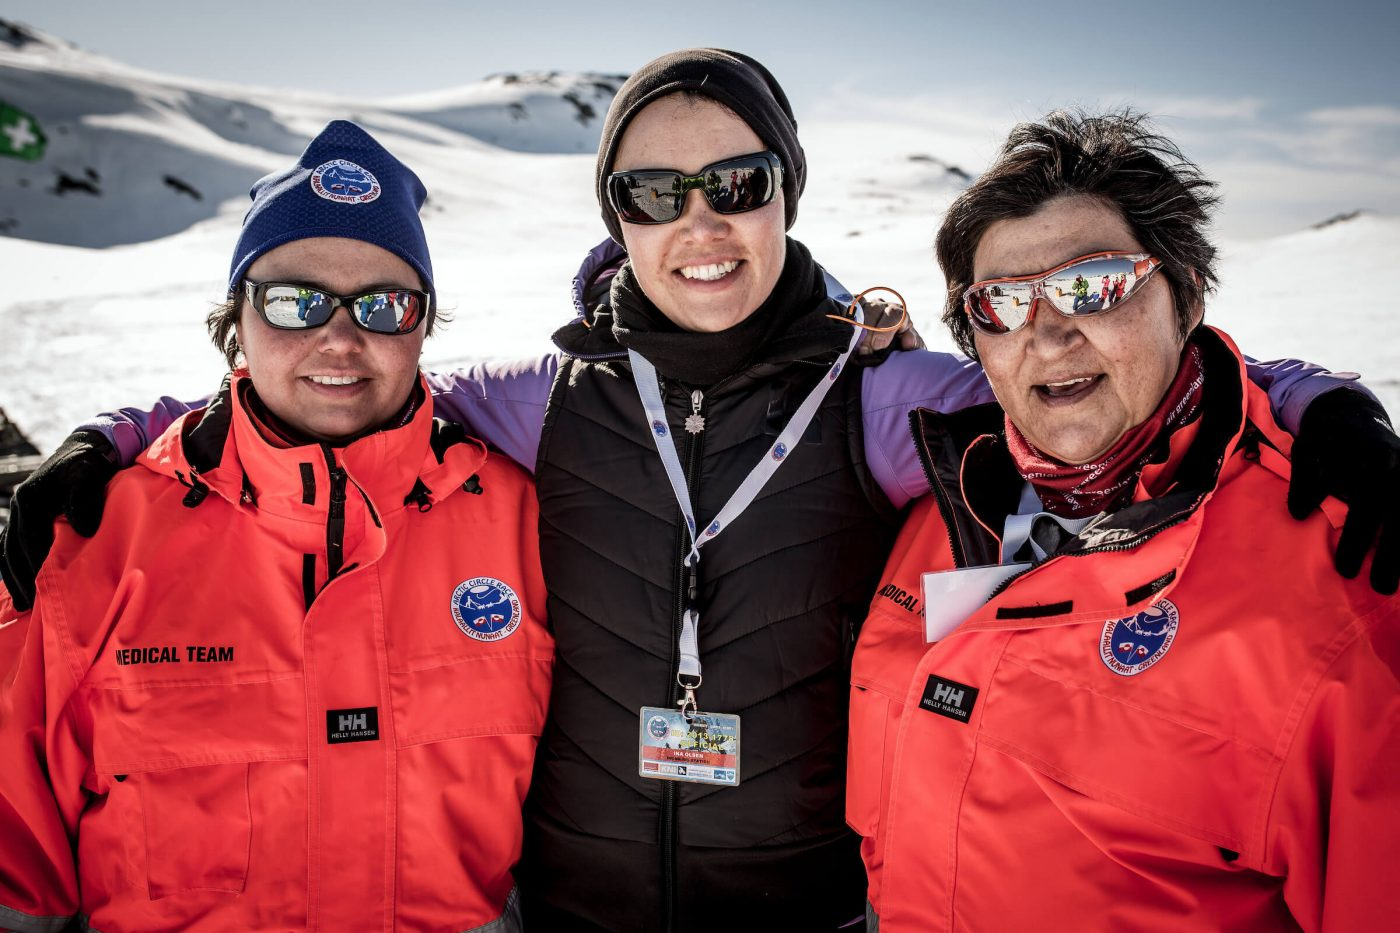 Volunteers at the Arctic Circle Race in Sisimiut. Photo by Mads Pihl, Visit Greenland